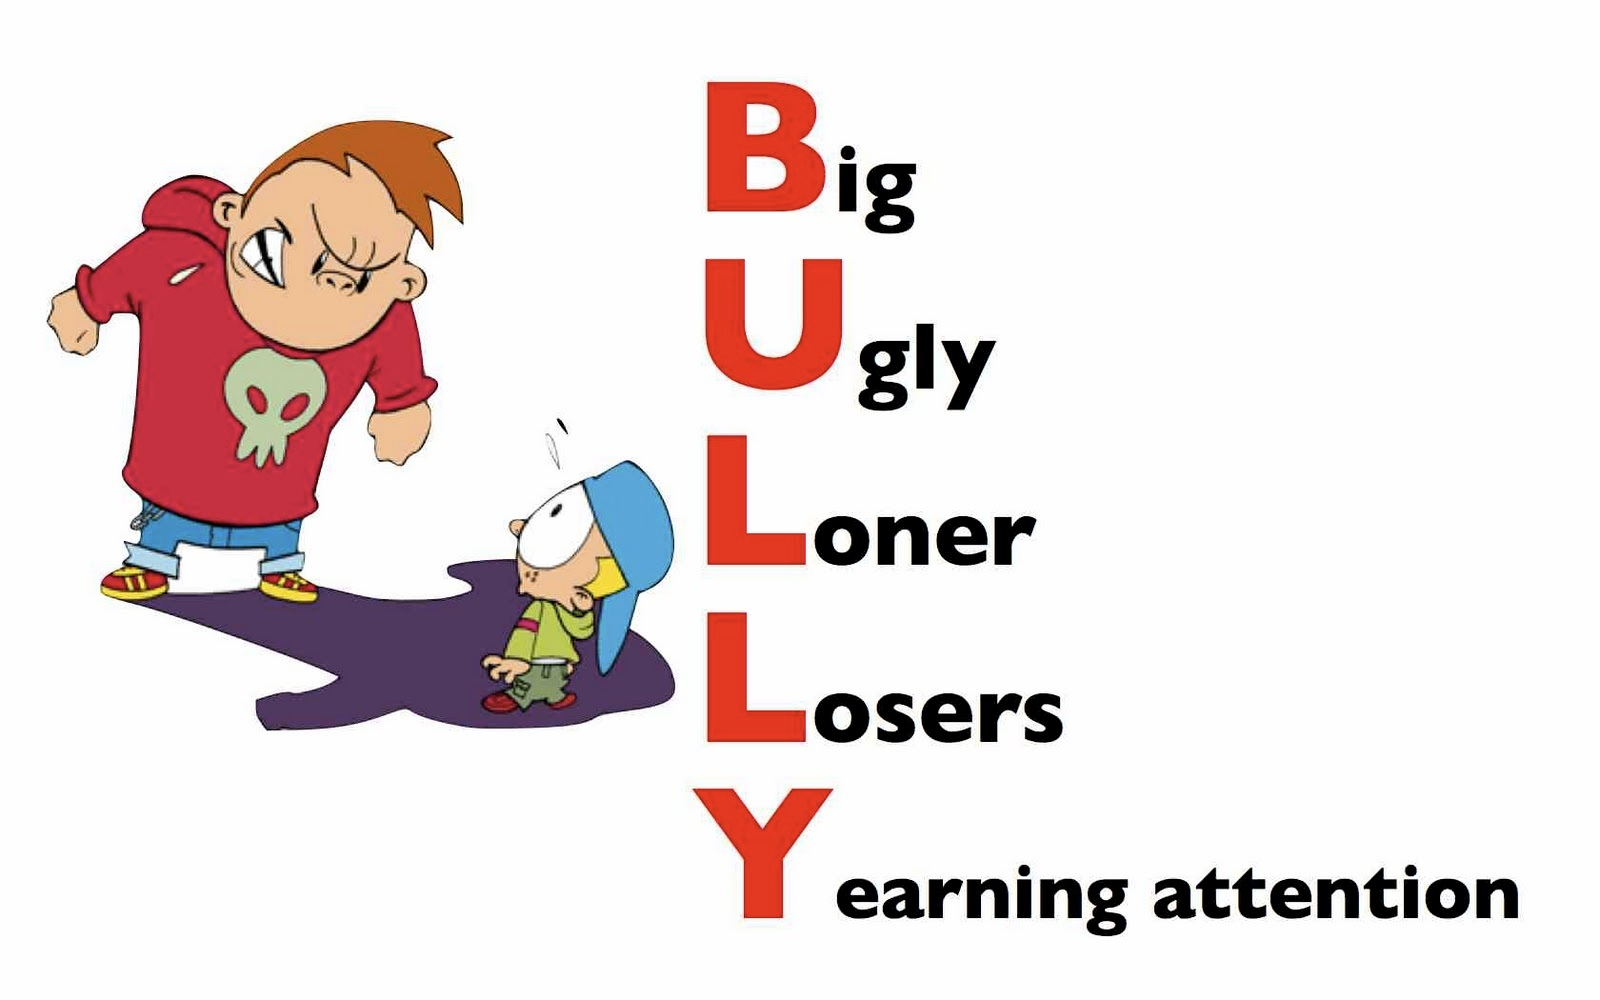 Cyber text images music. Bullying clipart easy